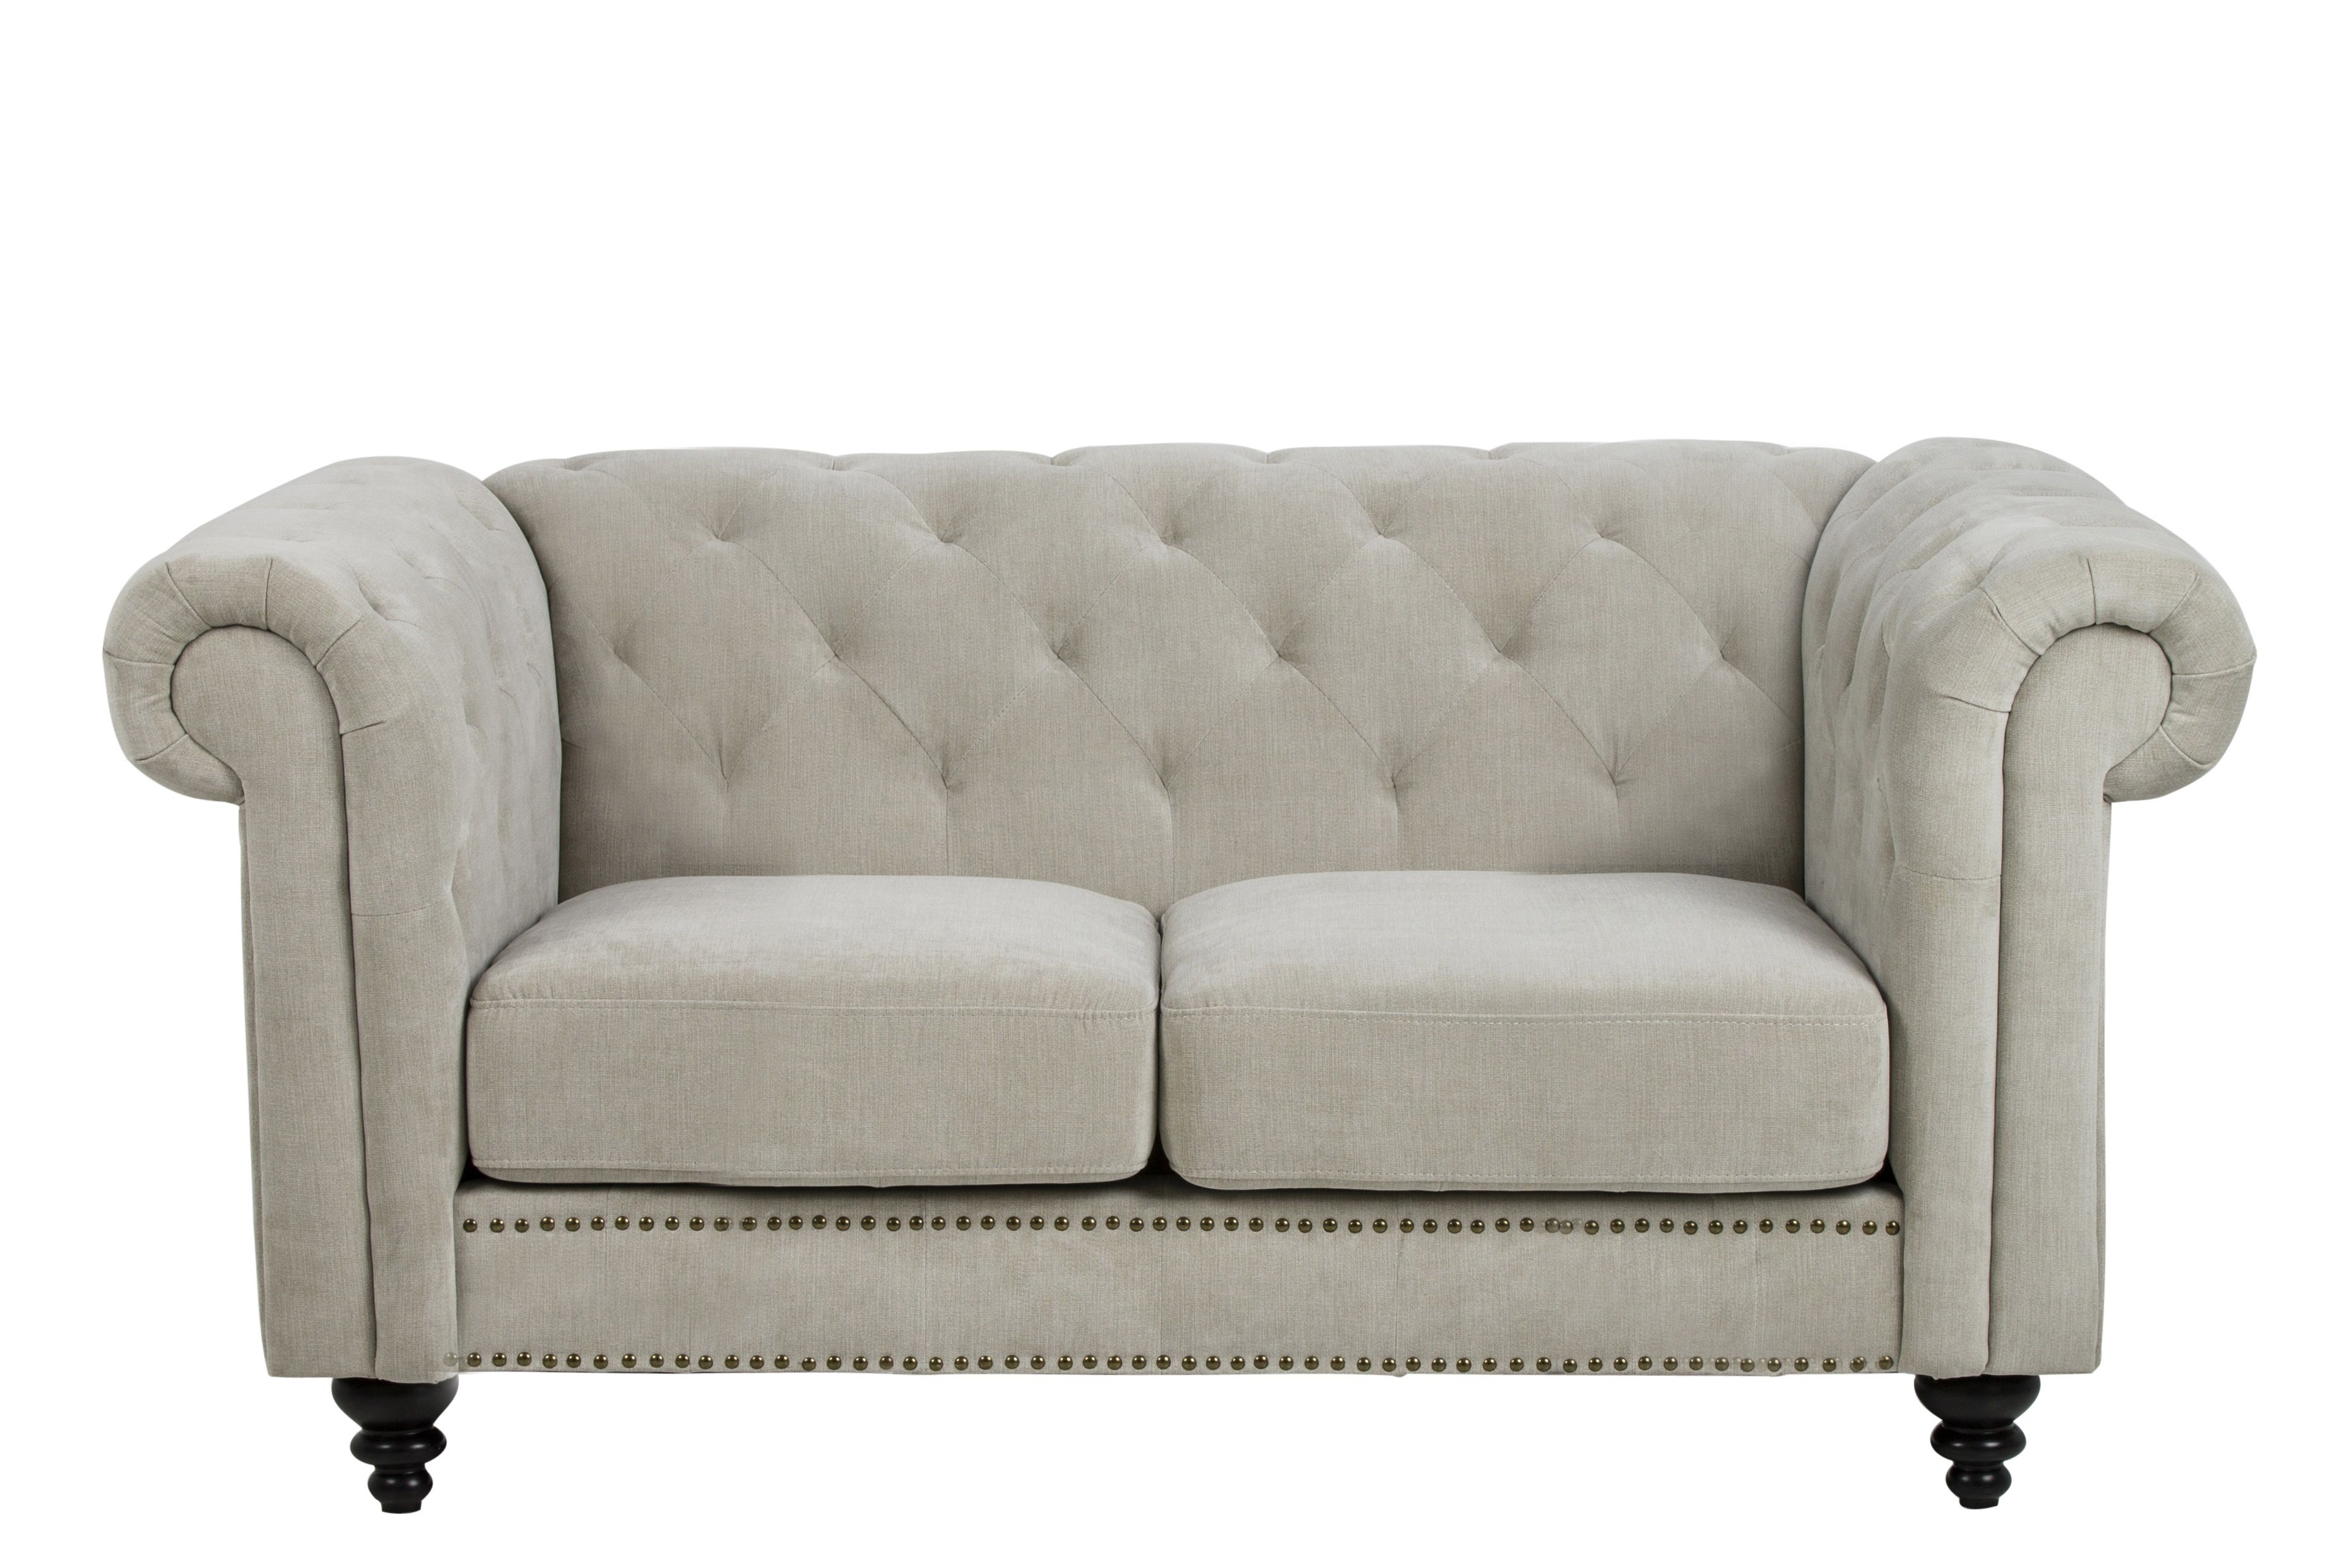 The Charlietown sofa makes no promise on style or quality